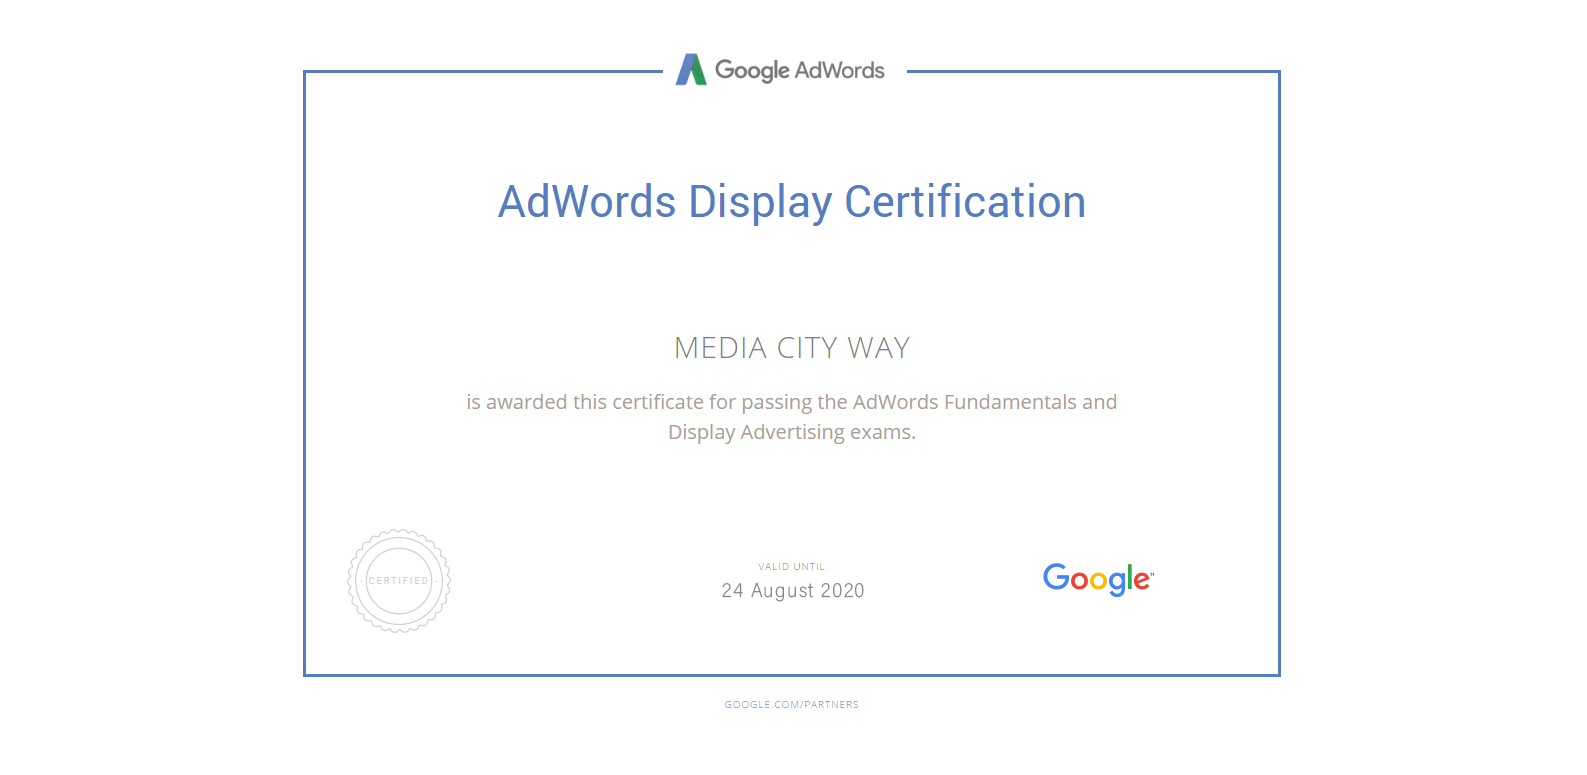 Adwords Display Certificate